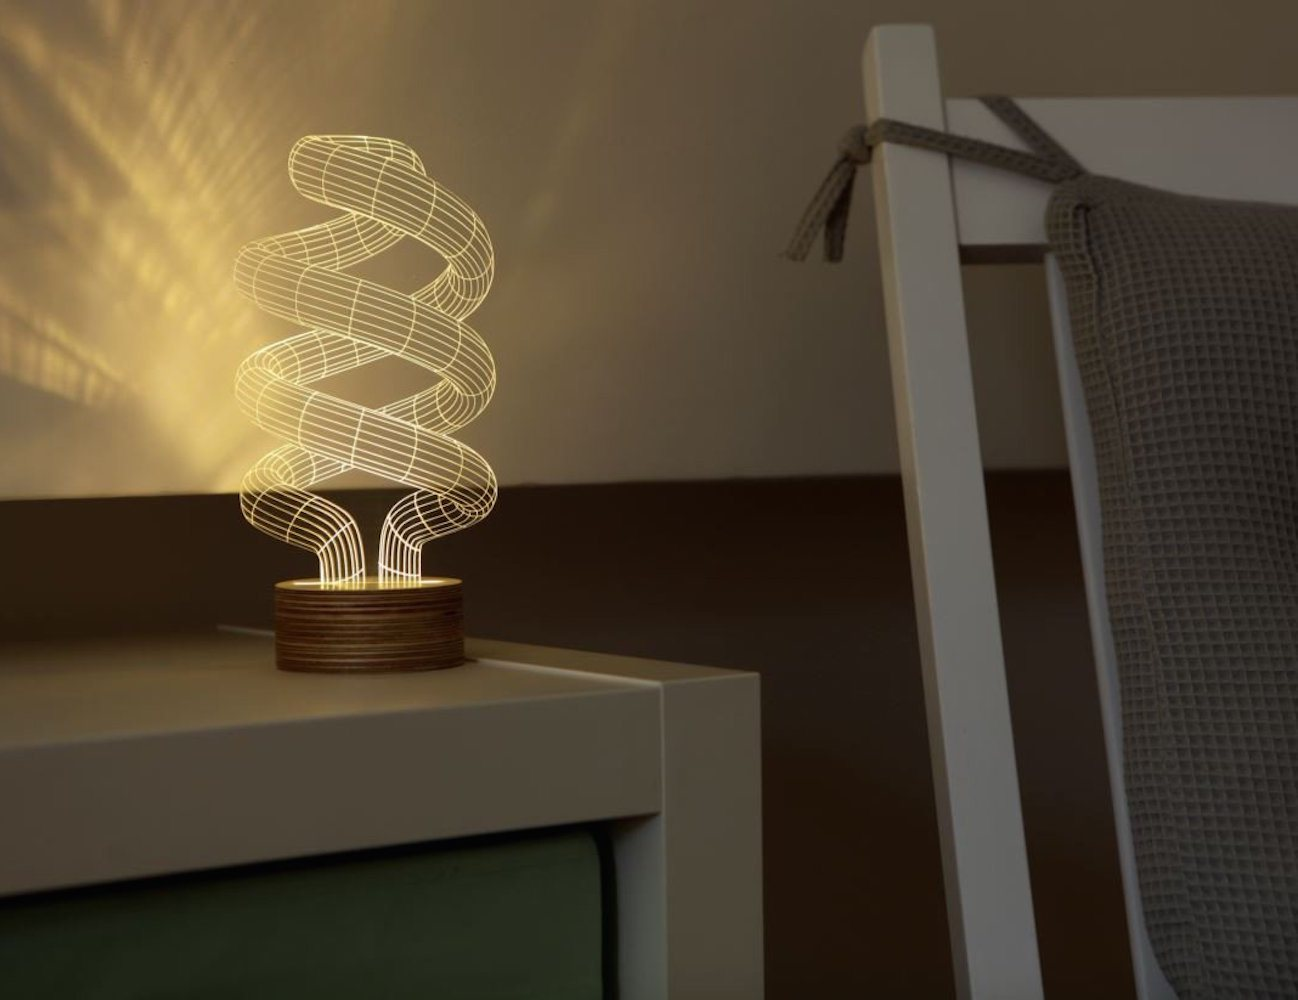 ... Spiral Bulbing Optical Illusion LED Lamp